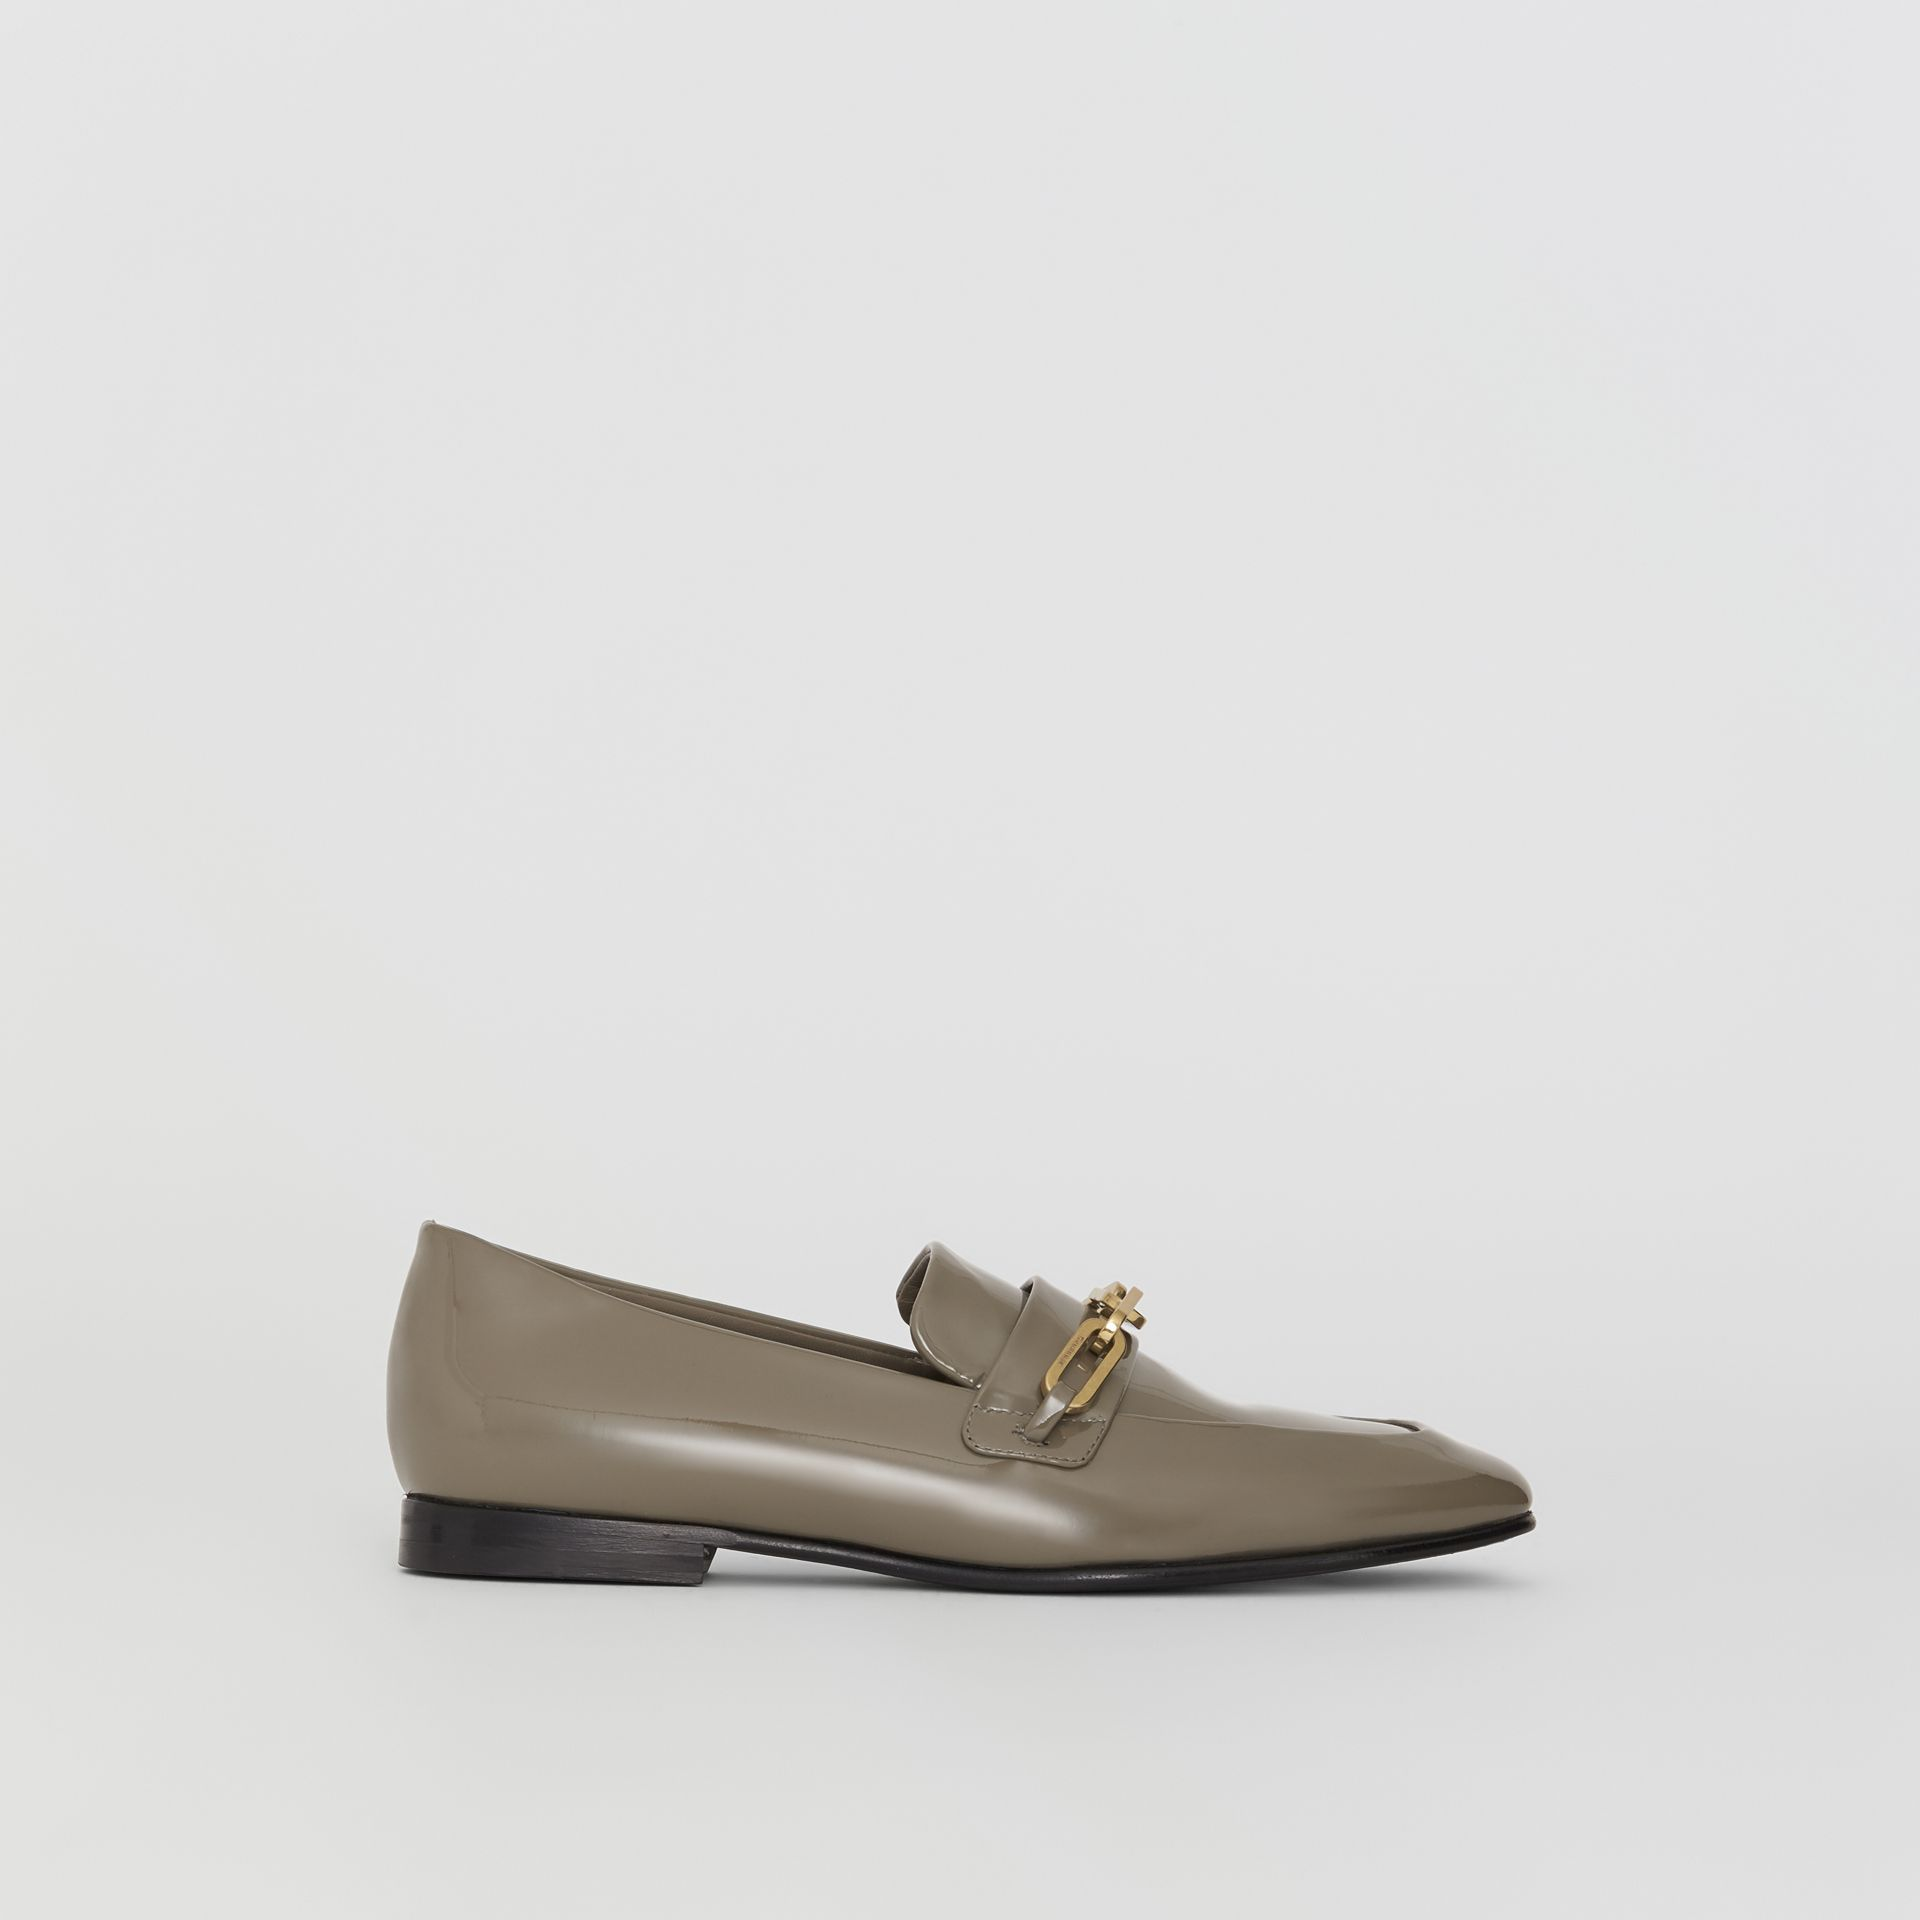 Link Detail Patent Leather Loafers in Taupe Grey - Women | Burberry - gallery image 5